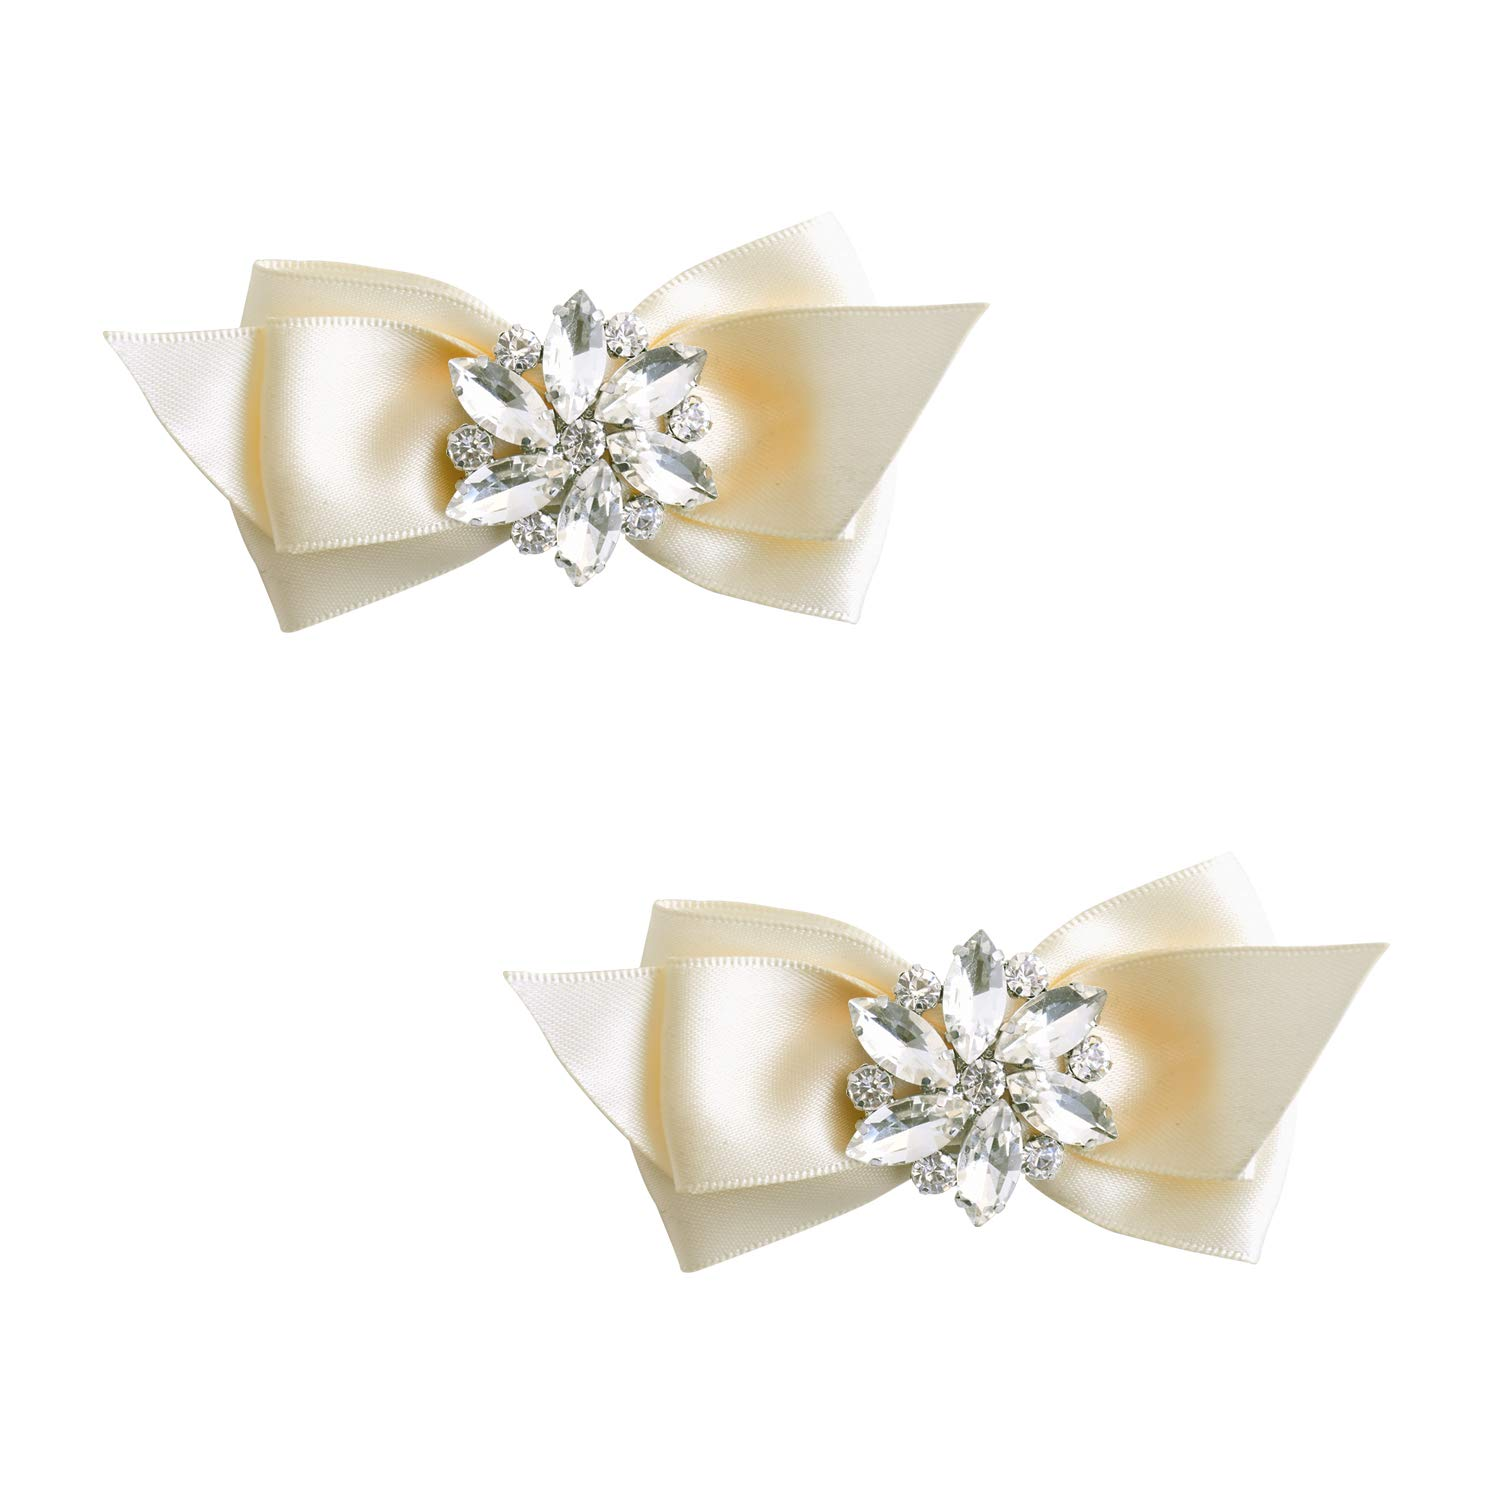 ElegantPark CQ Women Bow Shoe Clips Rhinestones Decorative Jewelry Wedding Party Accessories Decoration Ivory 2 Pcs